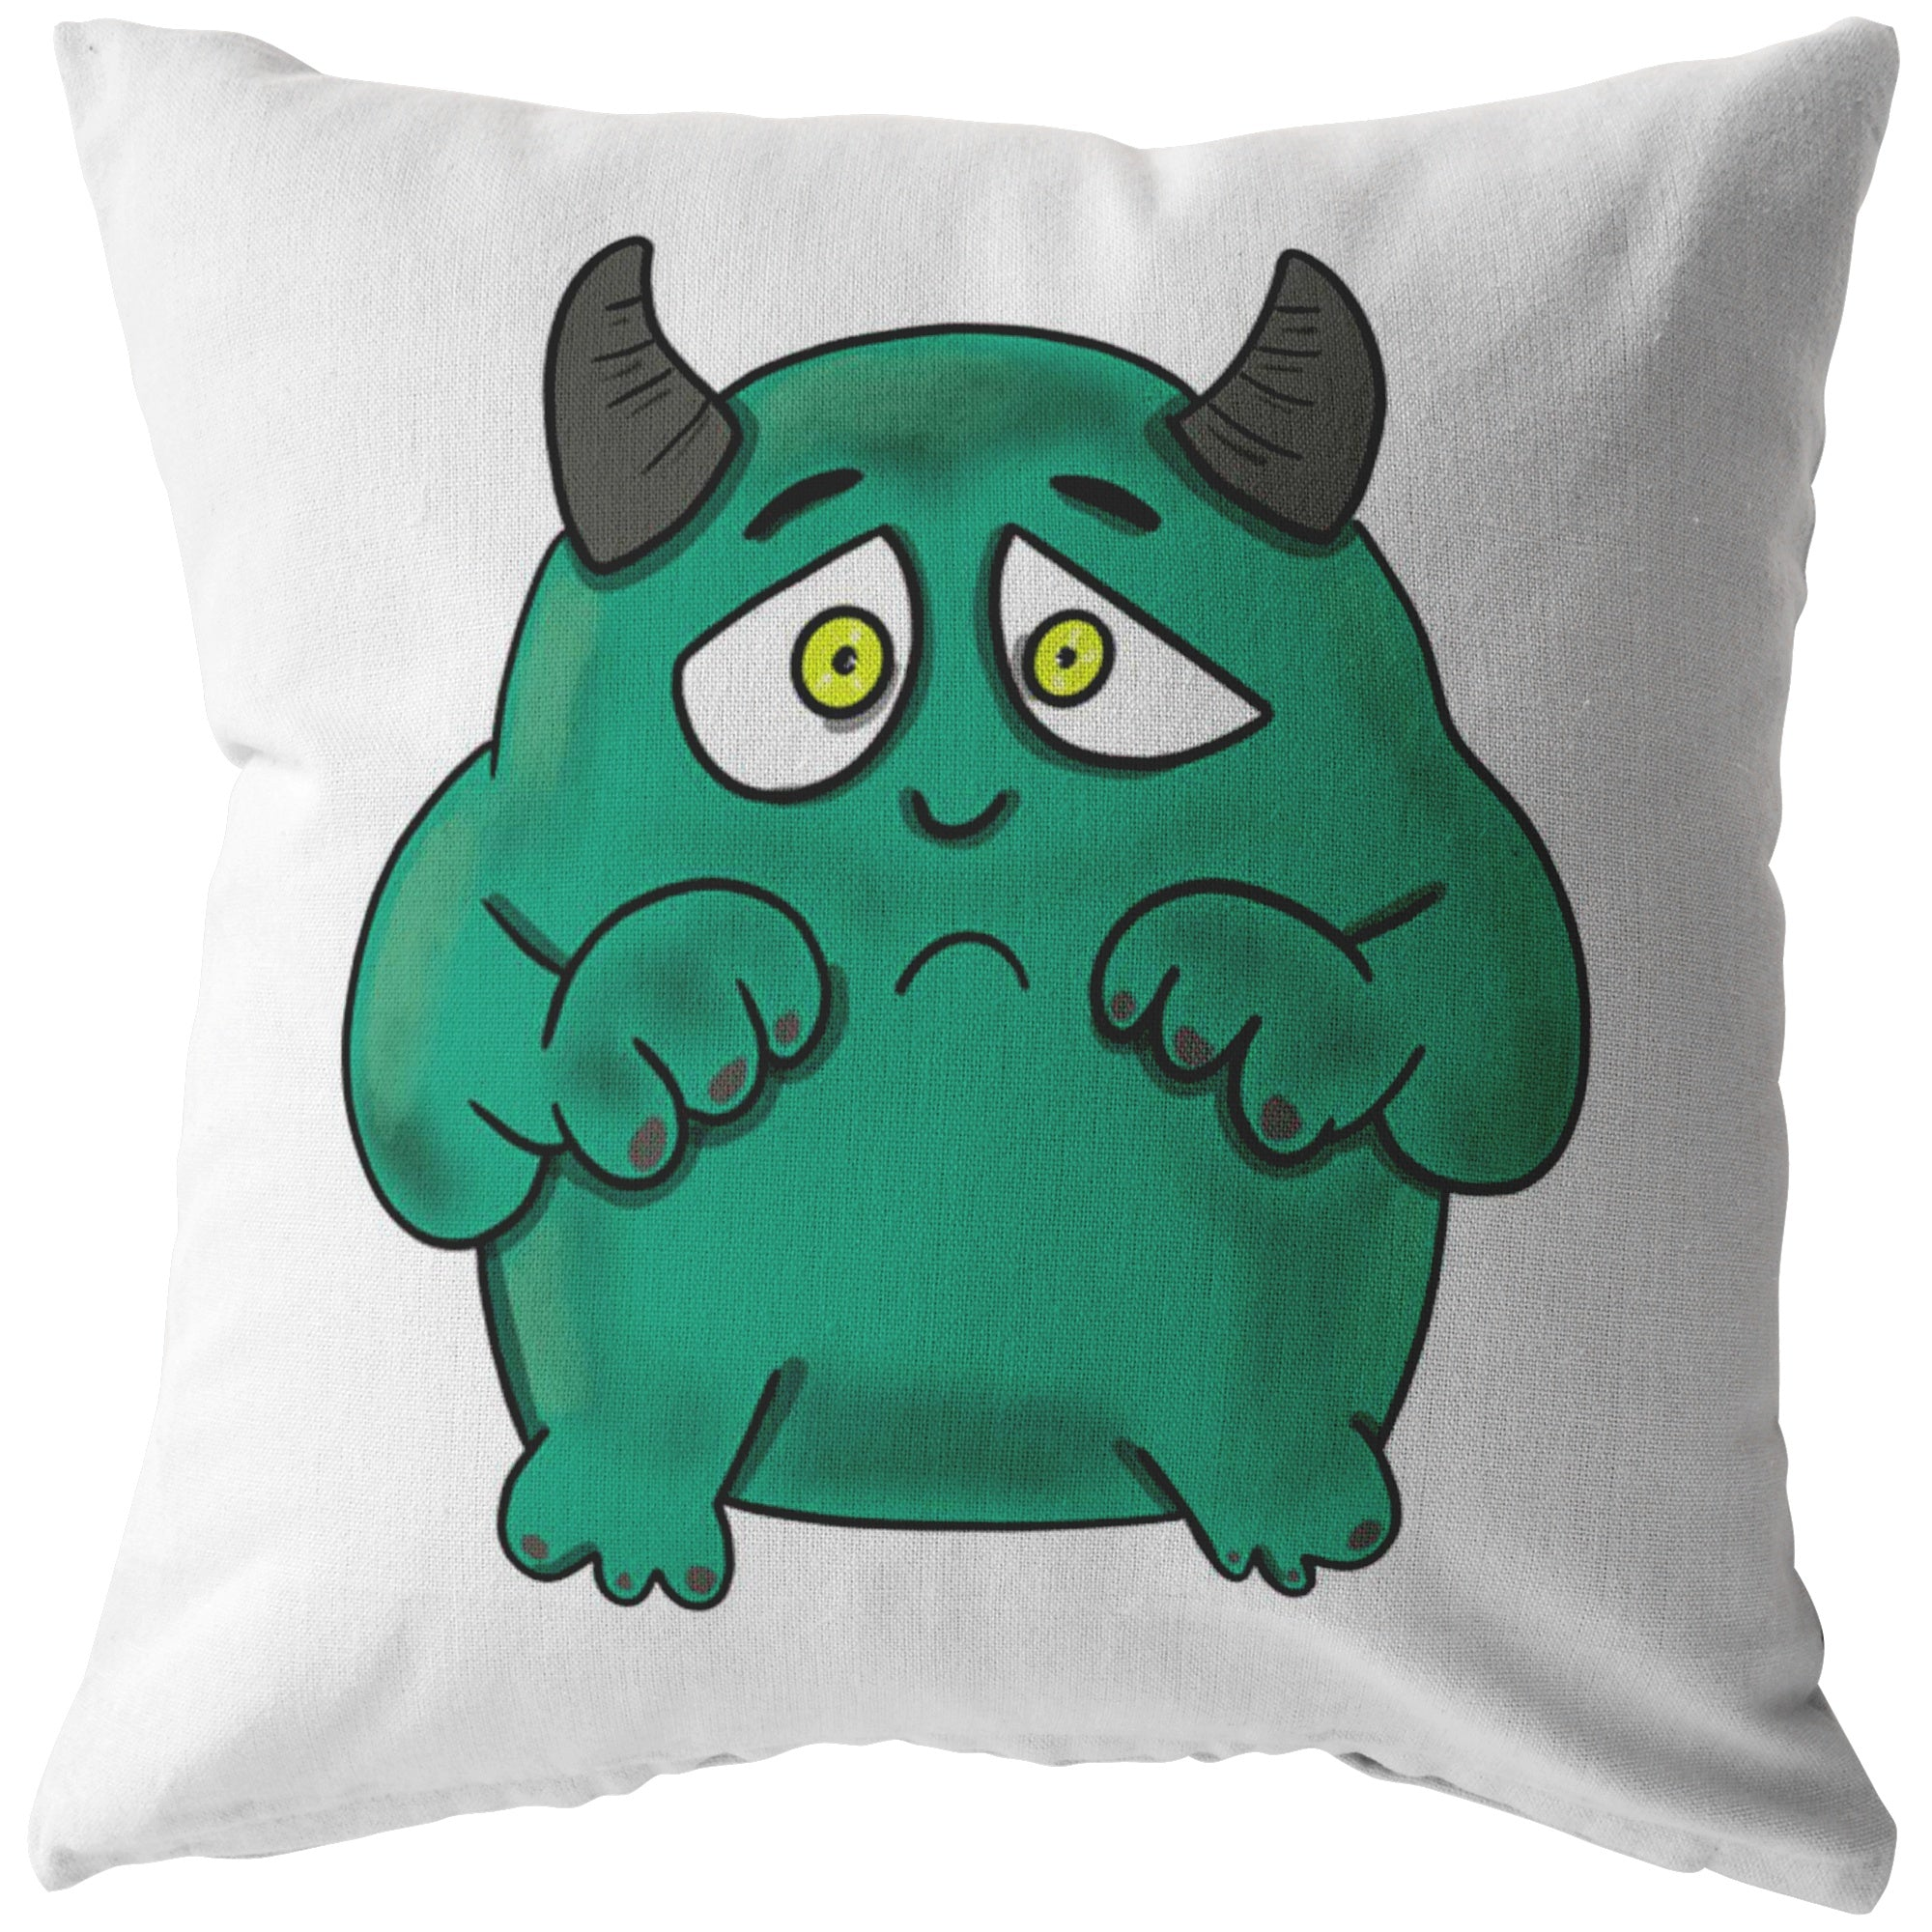 Interstitial Cystitis - IC Monster Pillow - The Unchargeables